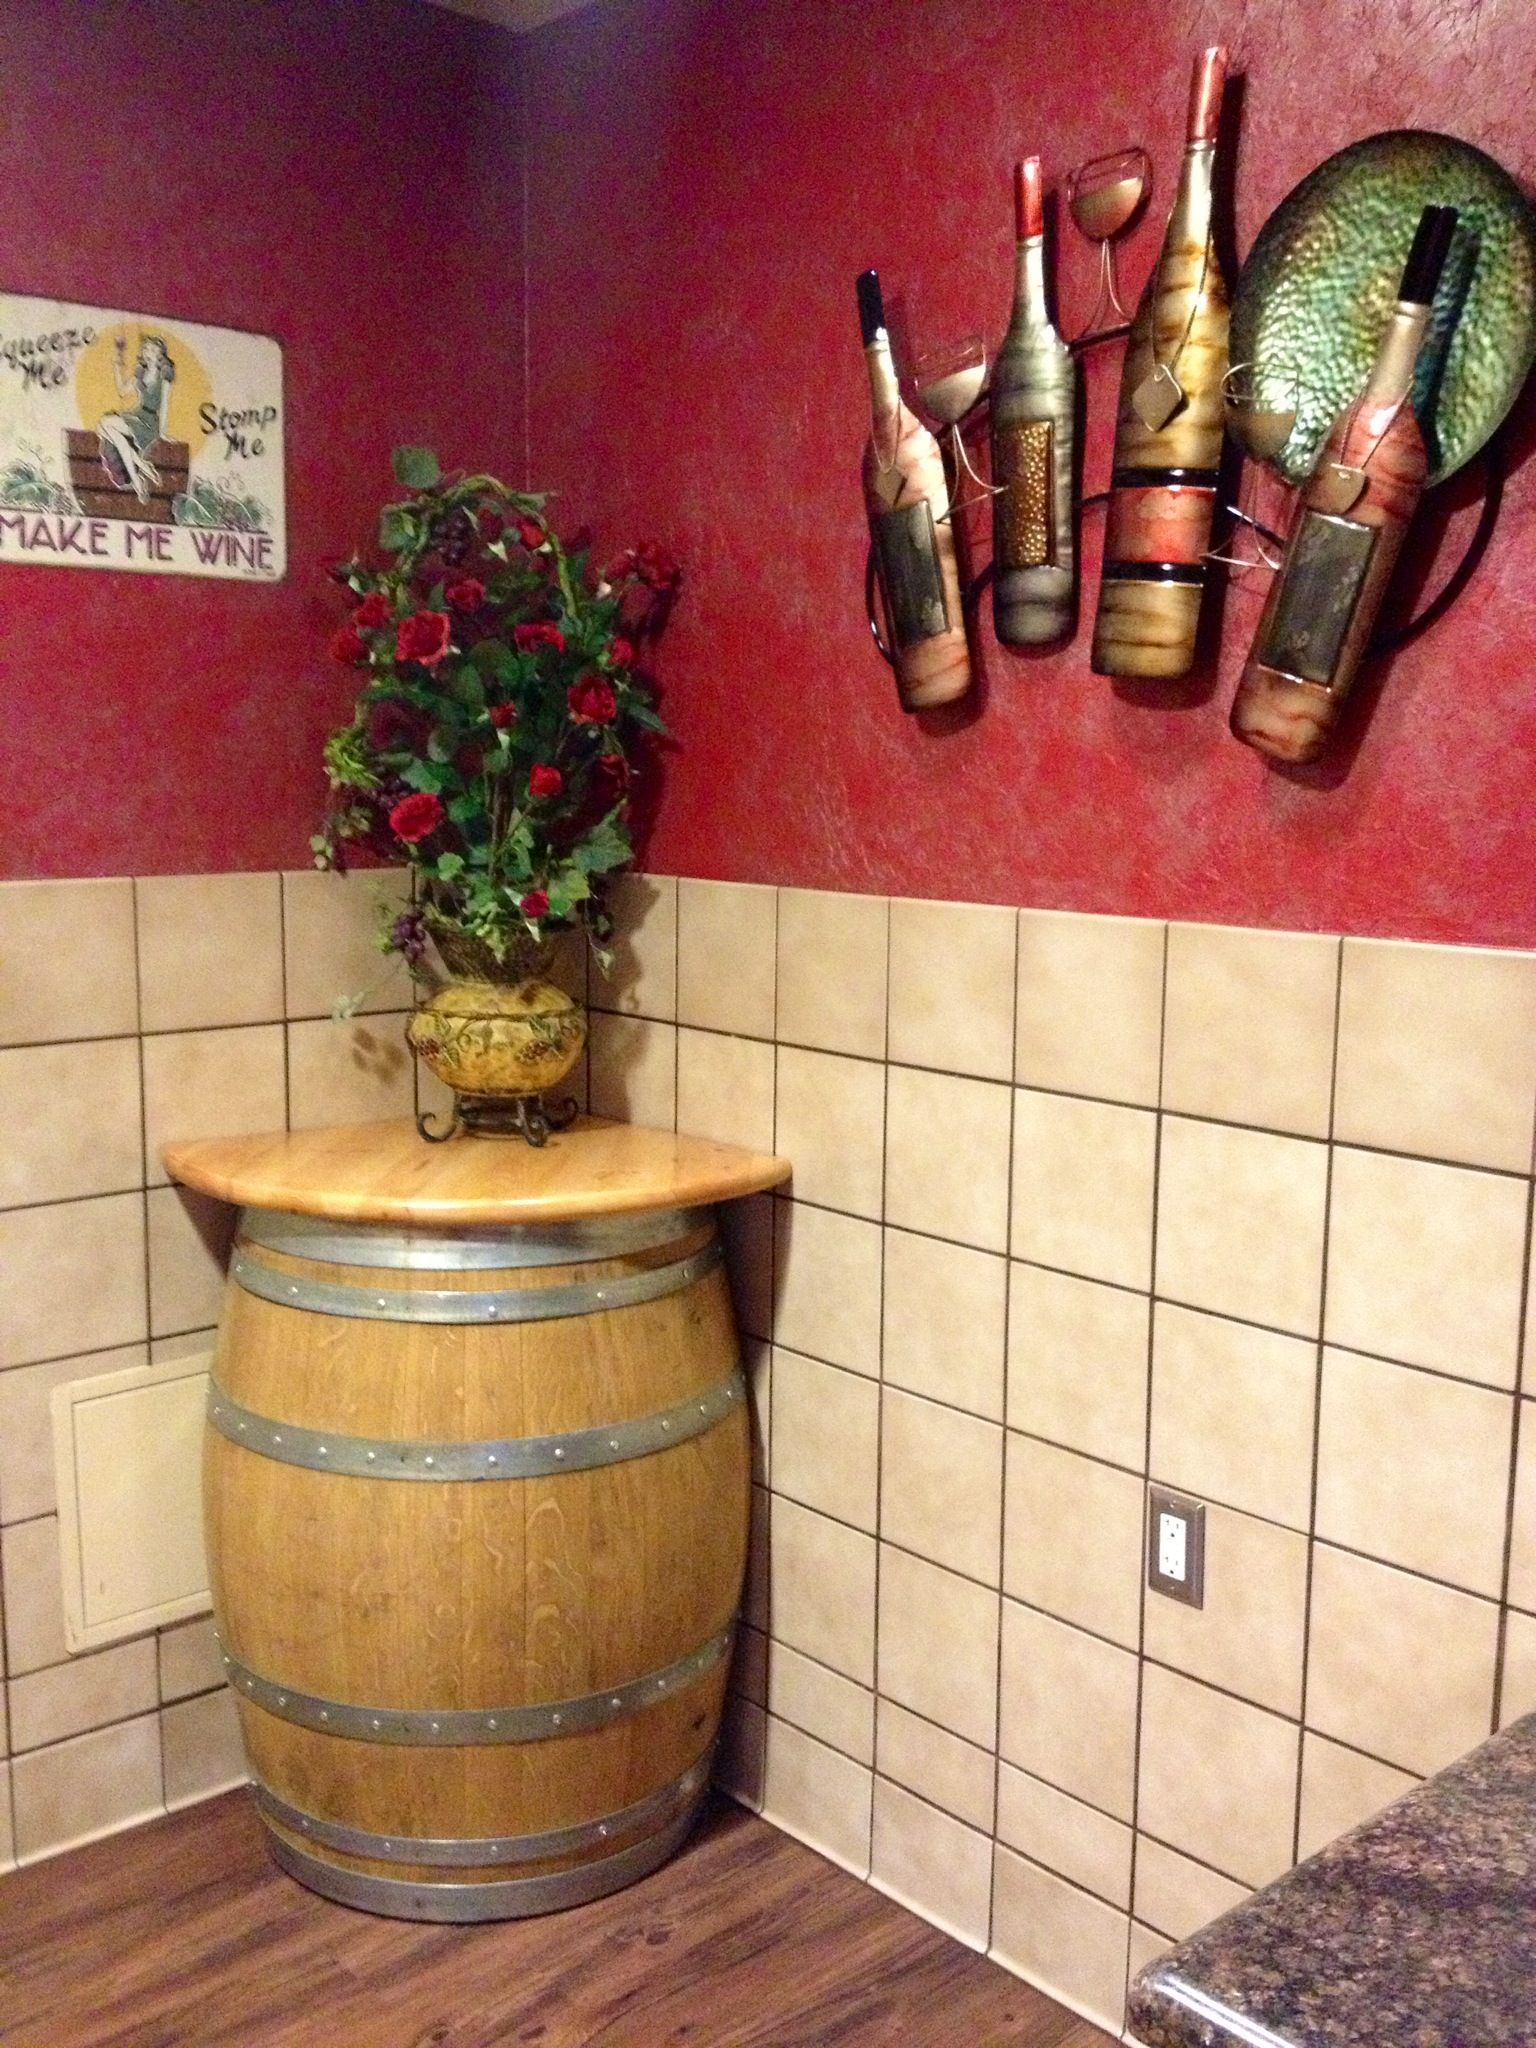 A peek into the women's restroom decorated with an old wine barrel and wine related decor